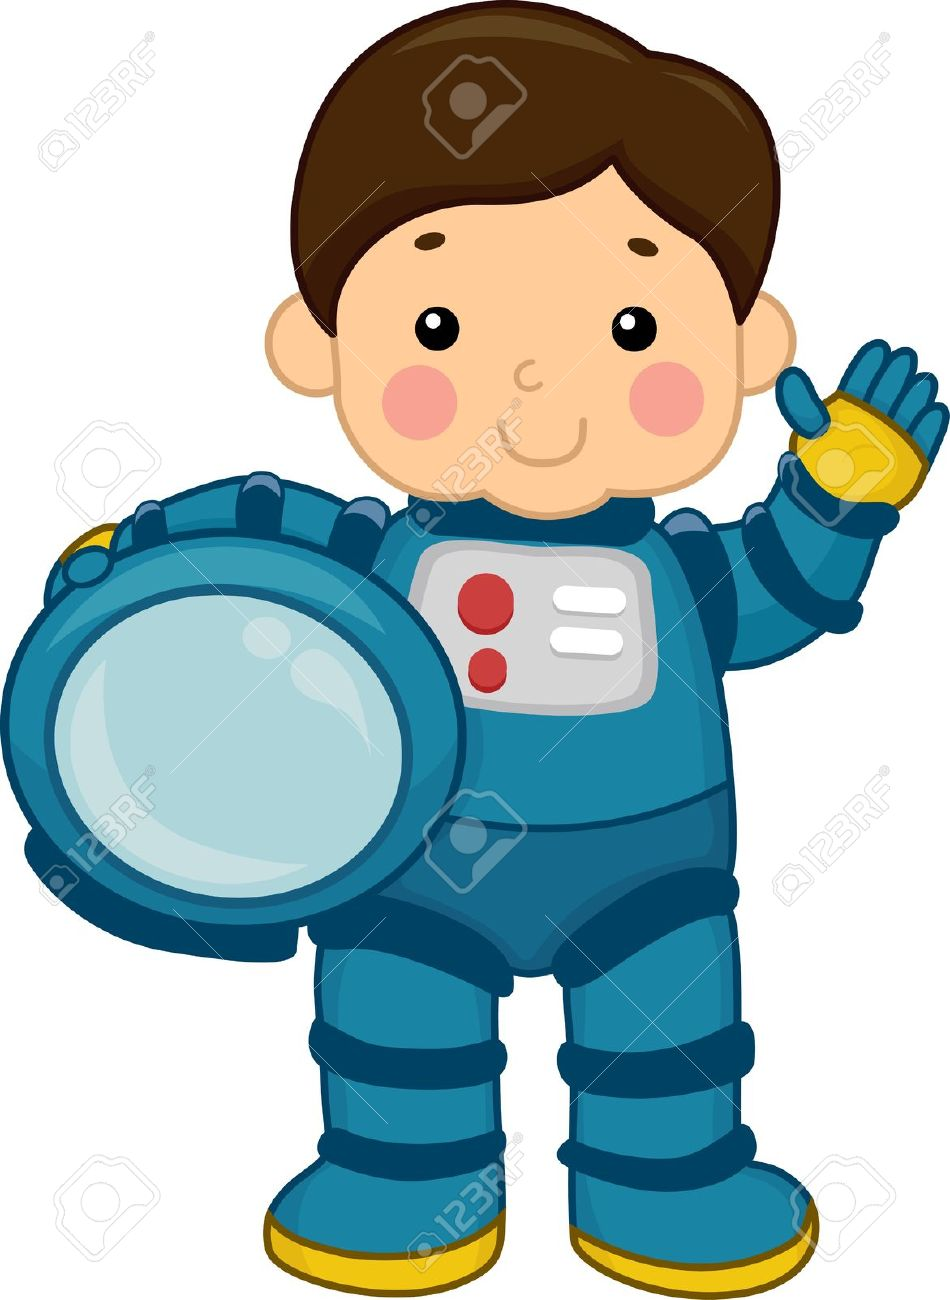 Cosmonaut space suit clipart - Clipground